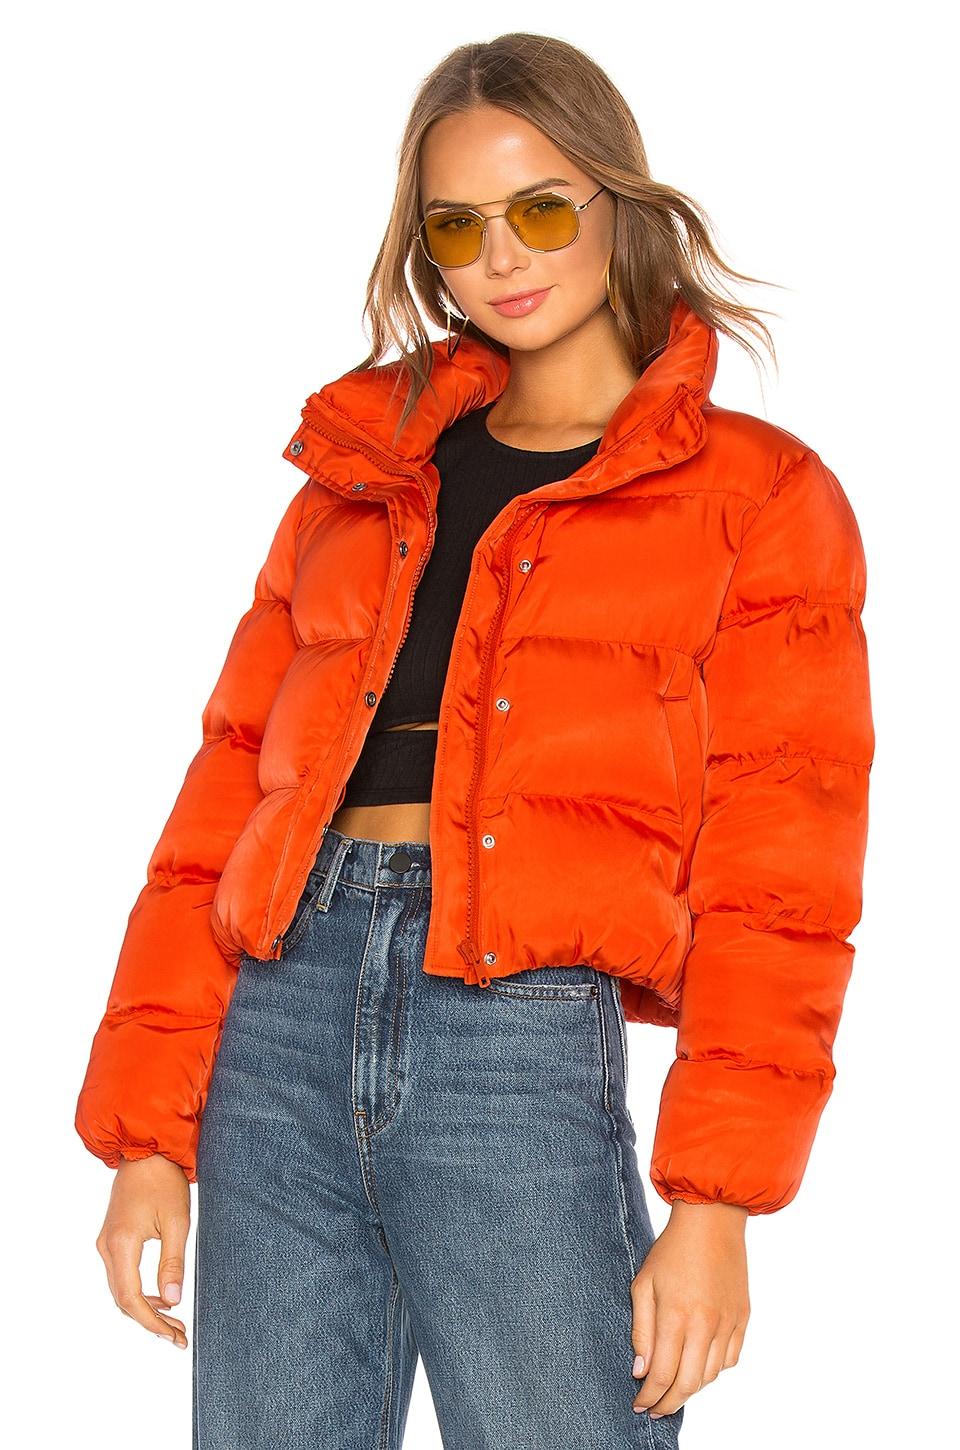 Lovers + Friends Starburst Puffer Jacket in Orange